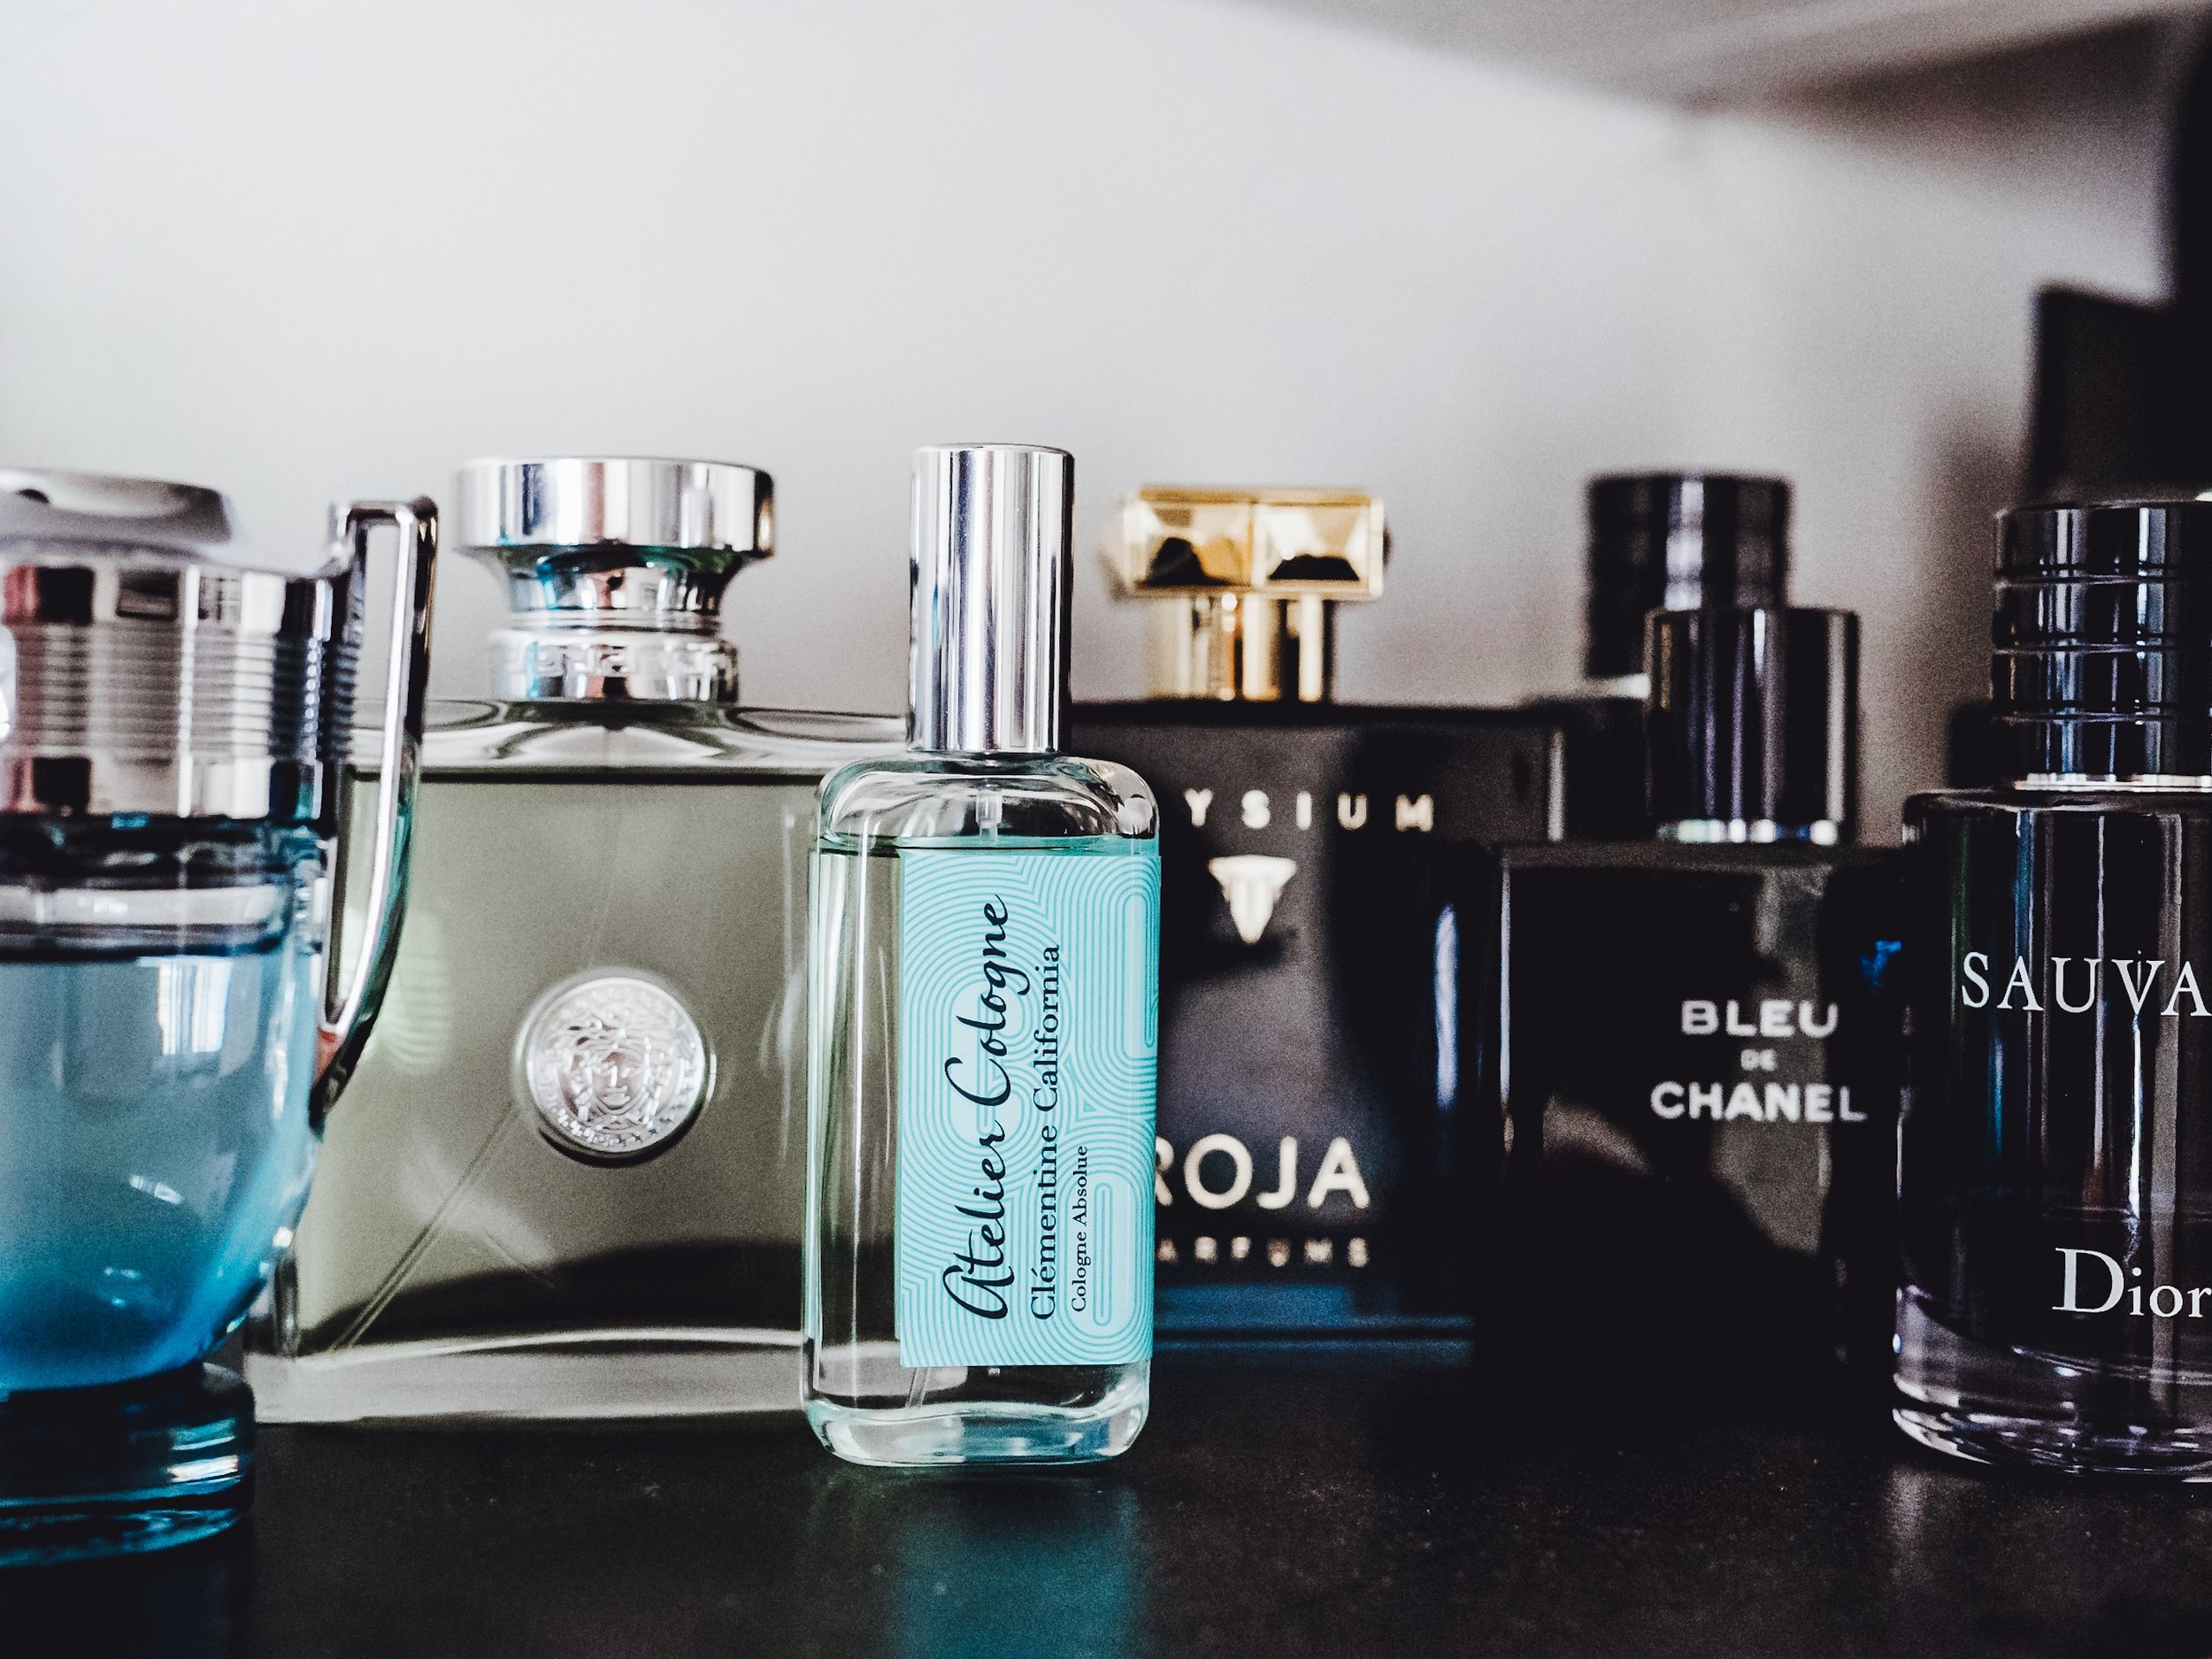 Paco Rabanne Invictus Aqua Versace Versense Atelier Cologne Clementine California Elysium Roja Dove Bleu de Chanel Dior Sauvage Fragrance Fragrances Collection